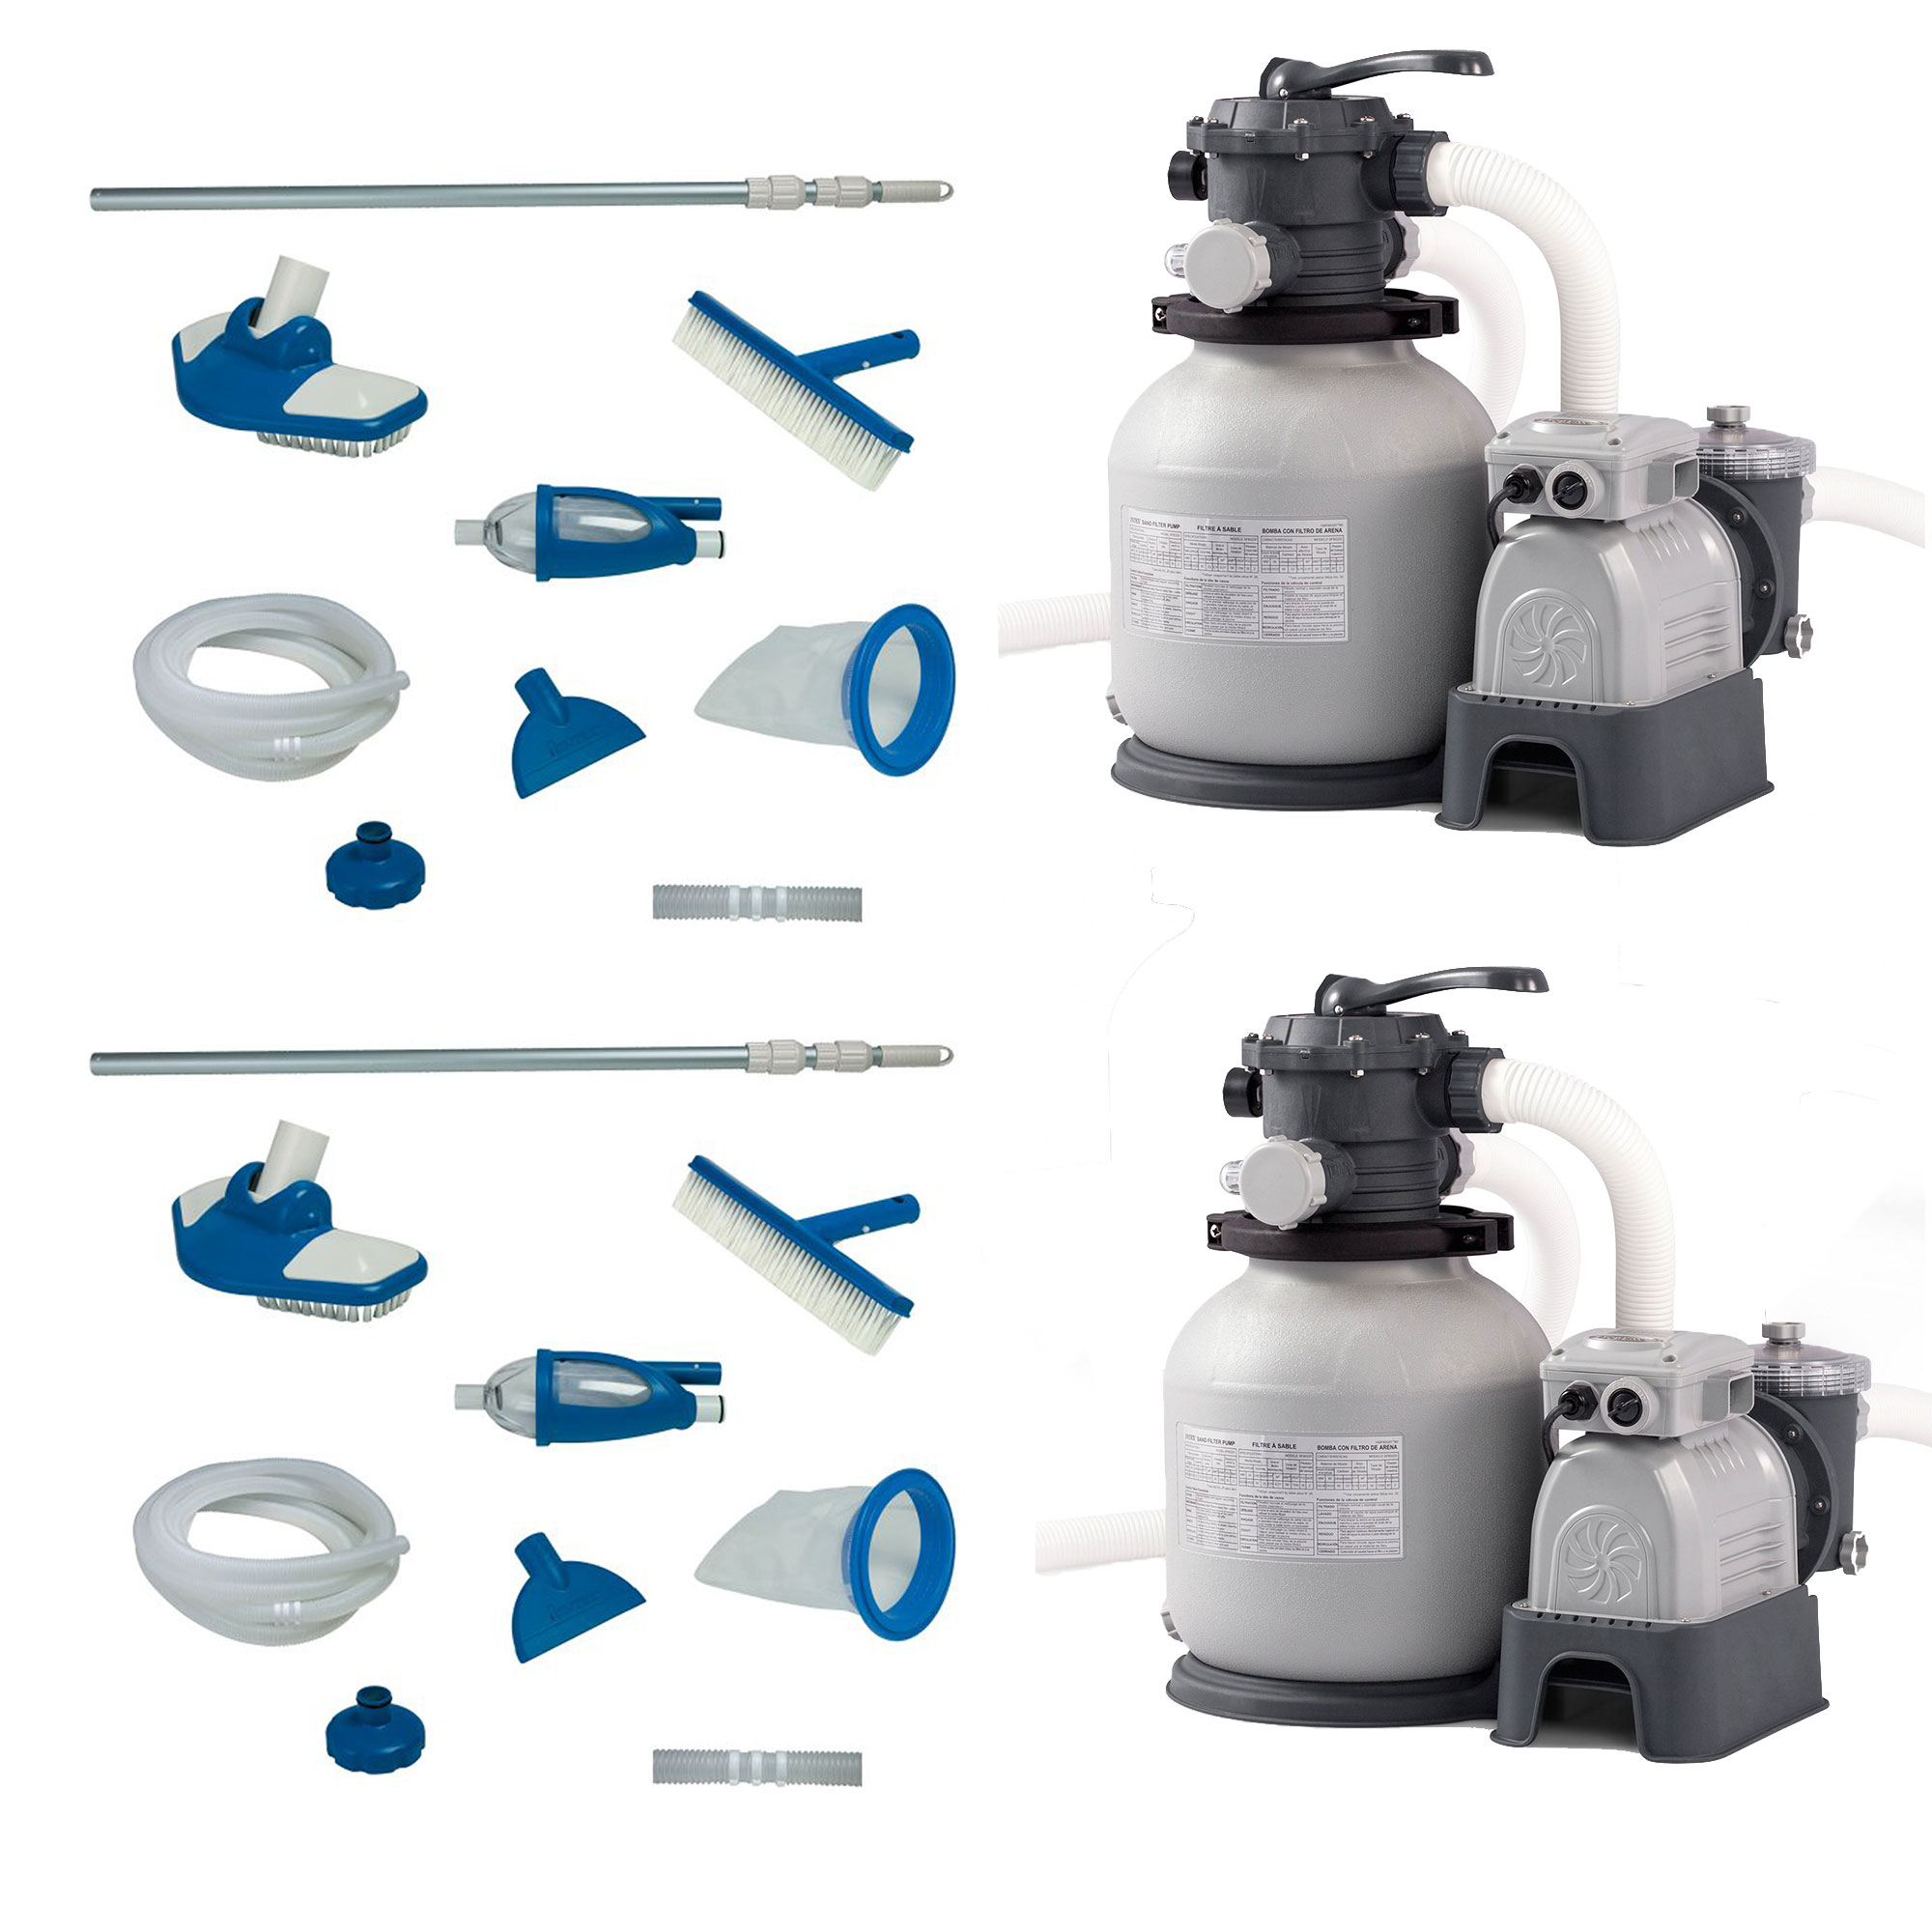 Intex Pool Maintenance Kit W Vacuum Pole 2 Pack Sand Filter Pump